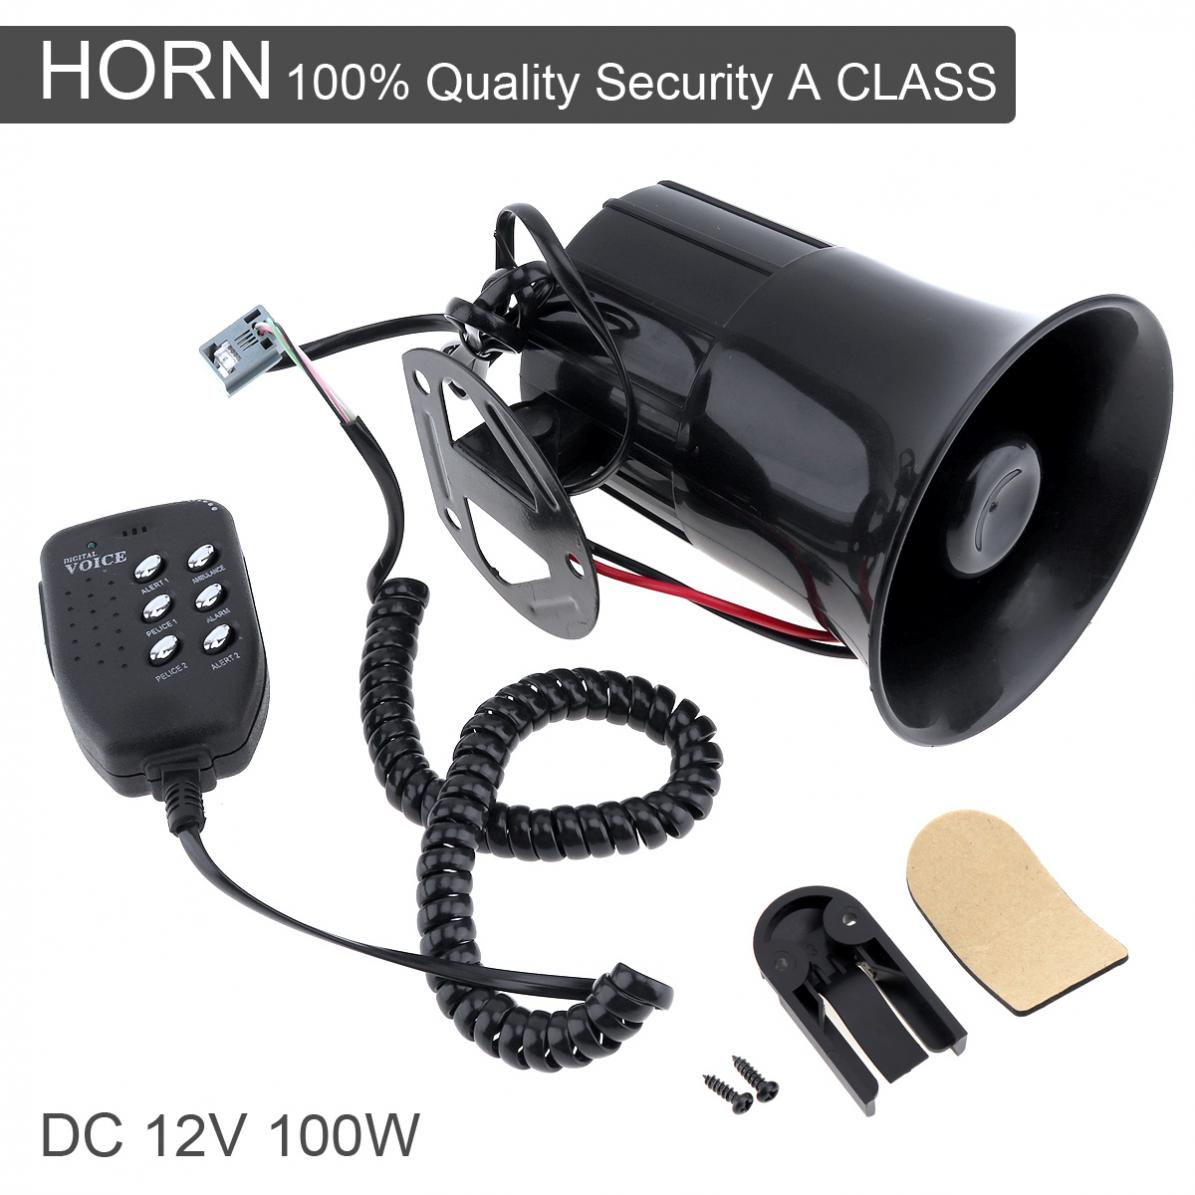 100W 6 Sound Tone Loud Horn Motorcycle Auto Car Vehicle Truck Speaker Warning Alarm Siren Police Fire Ambulance Horn Loudspeaker digitalboy car motorcycle dc 12v 100w loud air horn 125db siren sound speaker megaphone alarm for ambulance truck boat 6 tones